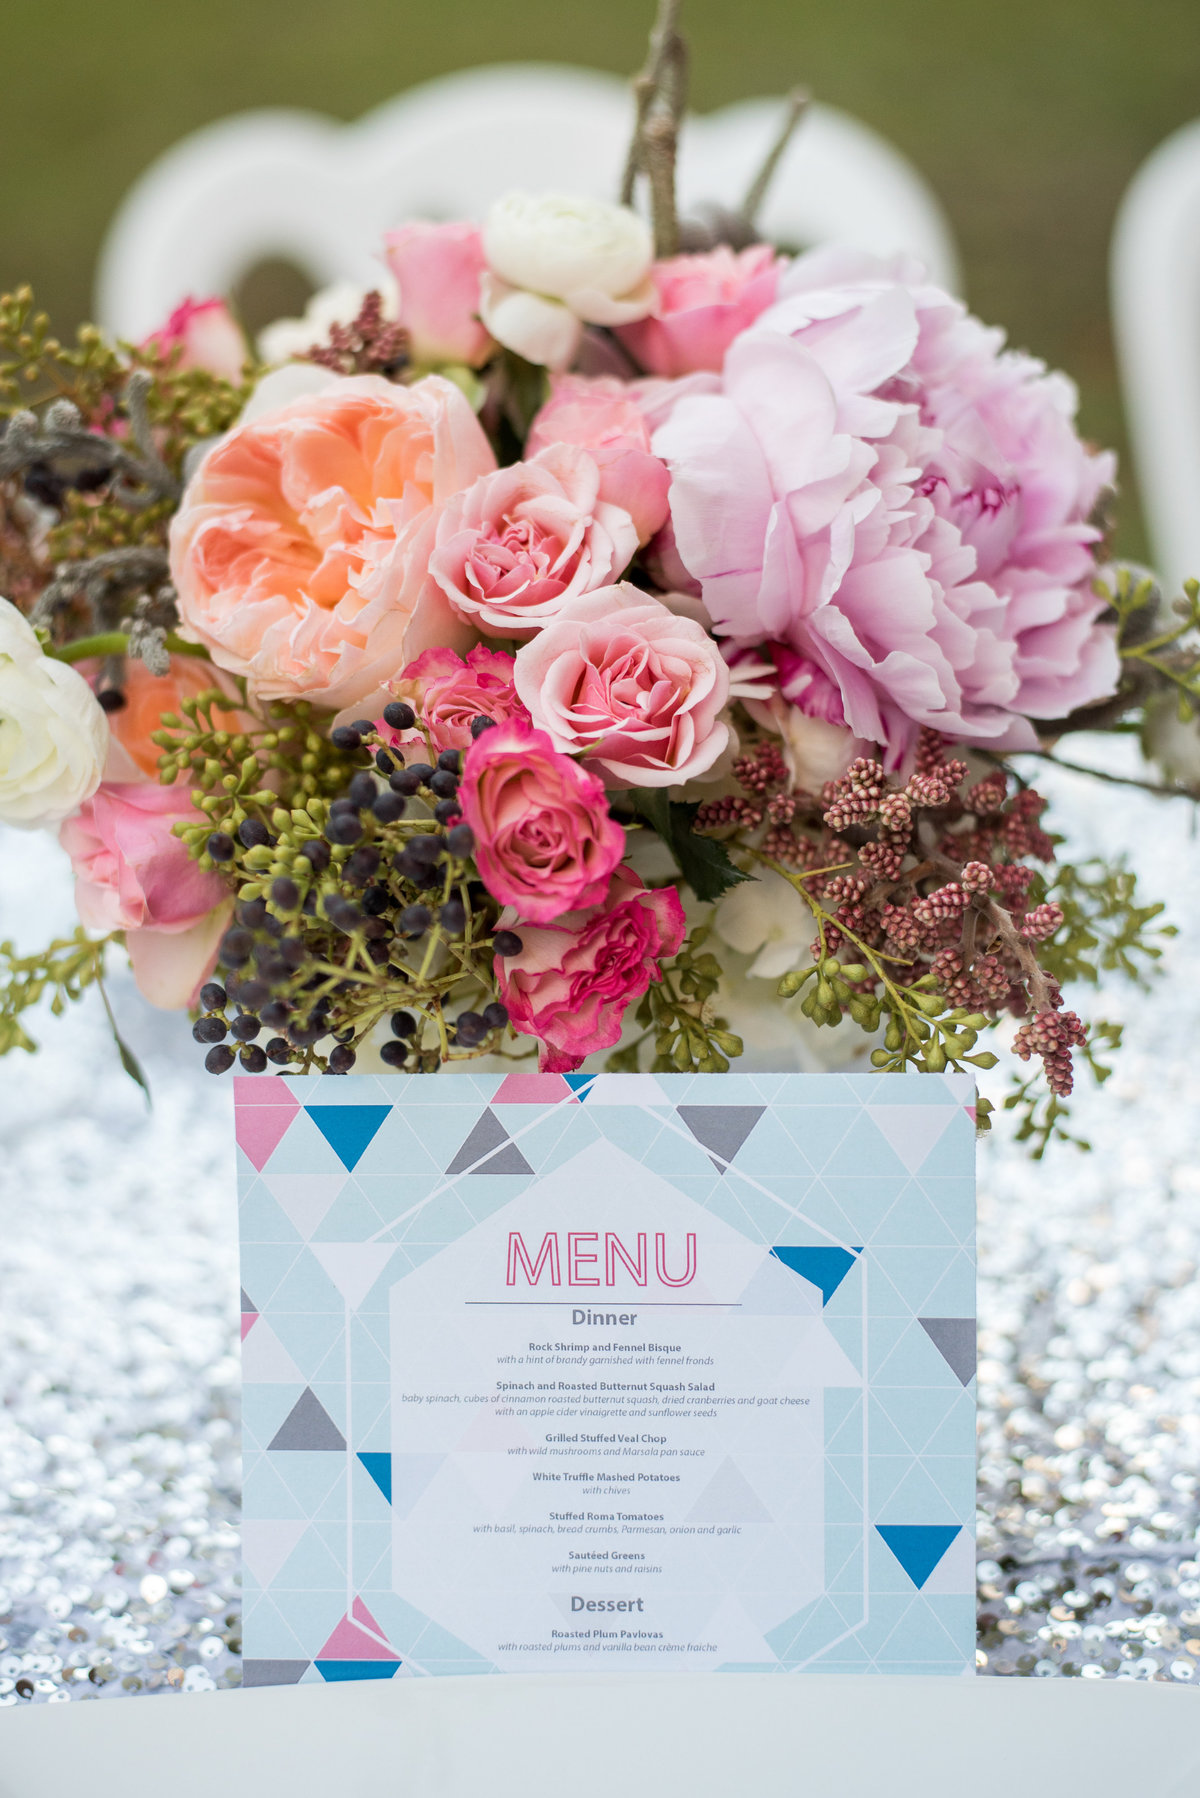 wedding flowers and menu